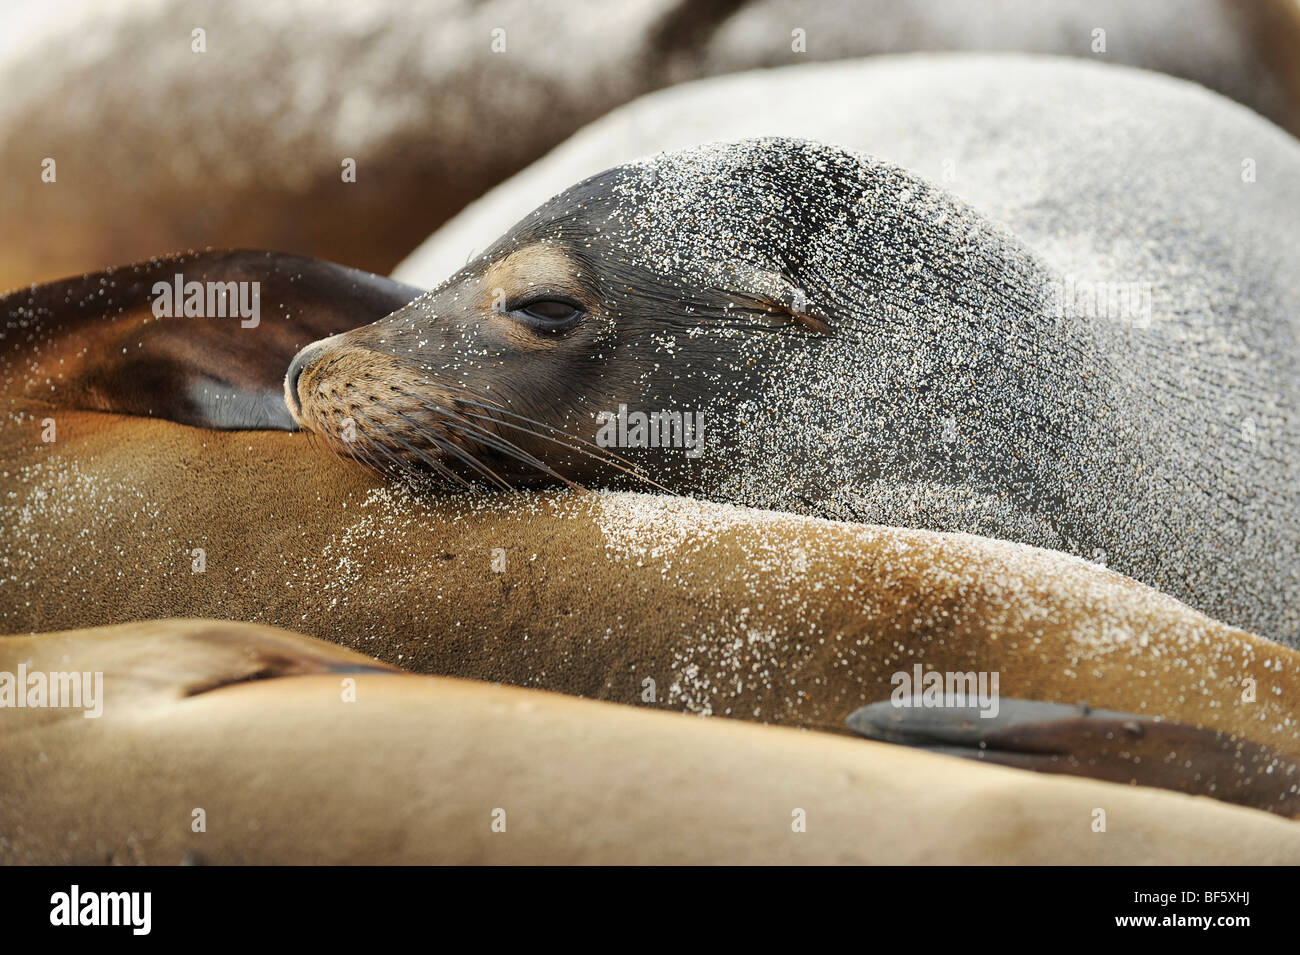 Galapagos Sea Lion (Zalophus wollebaeki), adult at beach, Espanola Island, Galapagos, Ecuador, South America - Stock Image